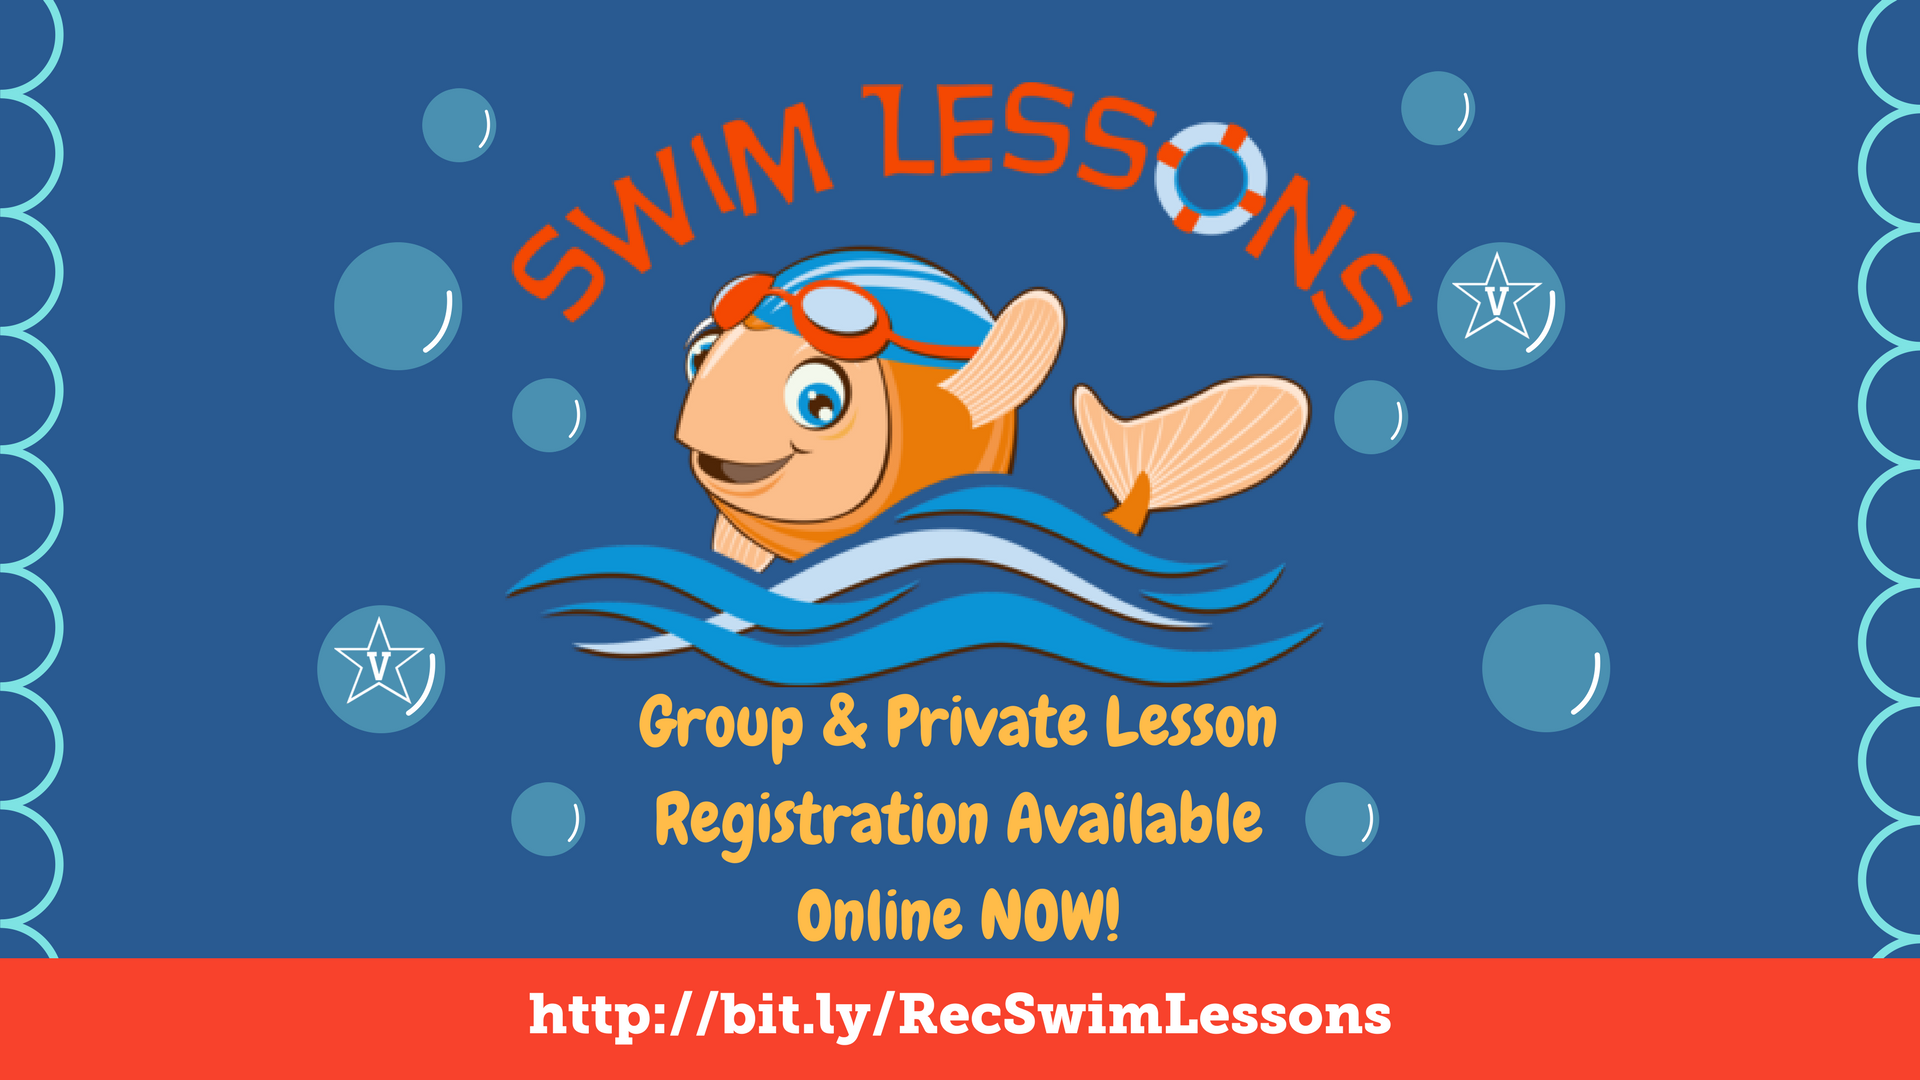 swimlessons_digitalsignage